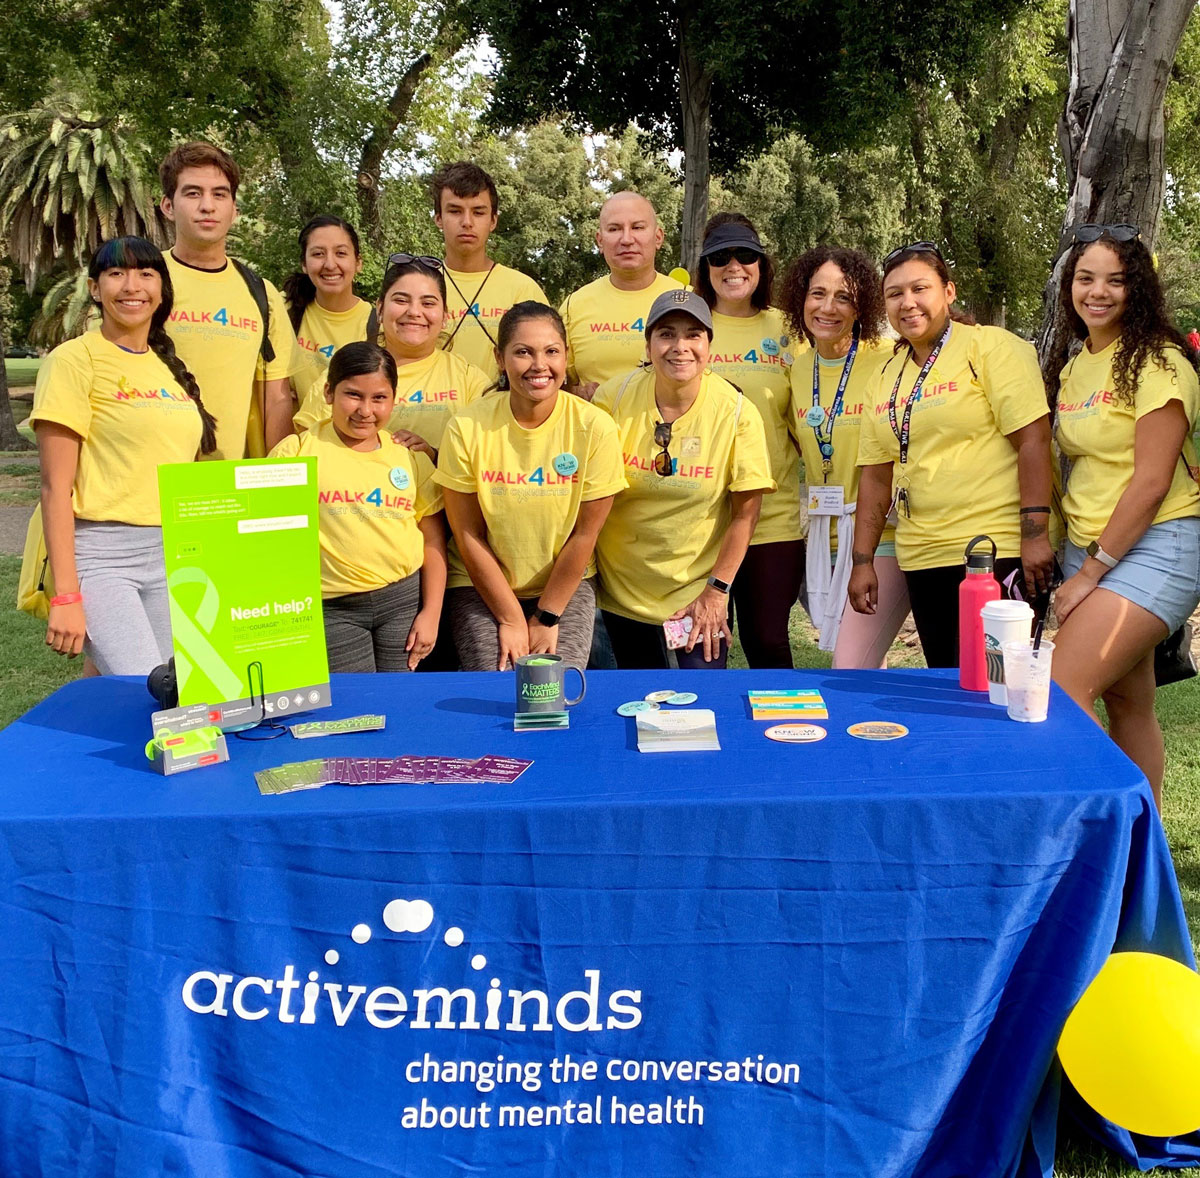 Active Minds participates at the Walk4Life Event